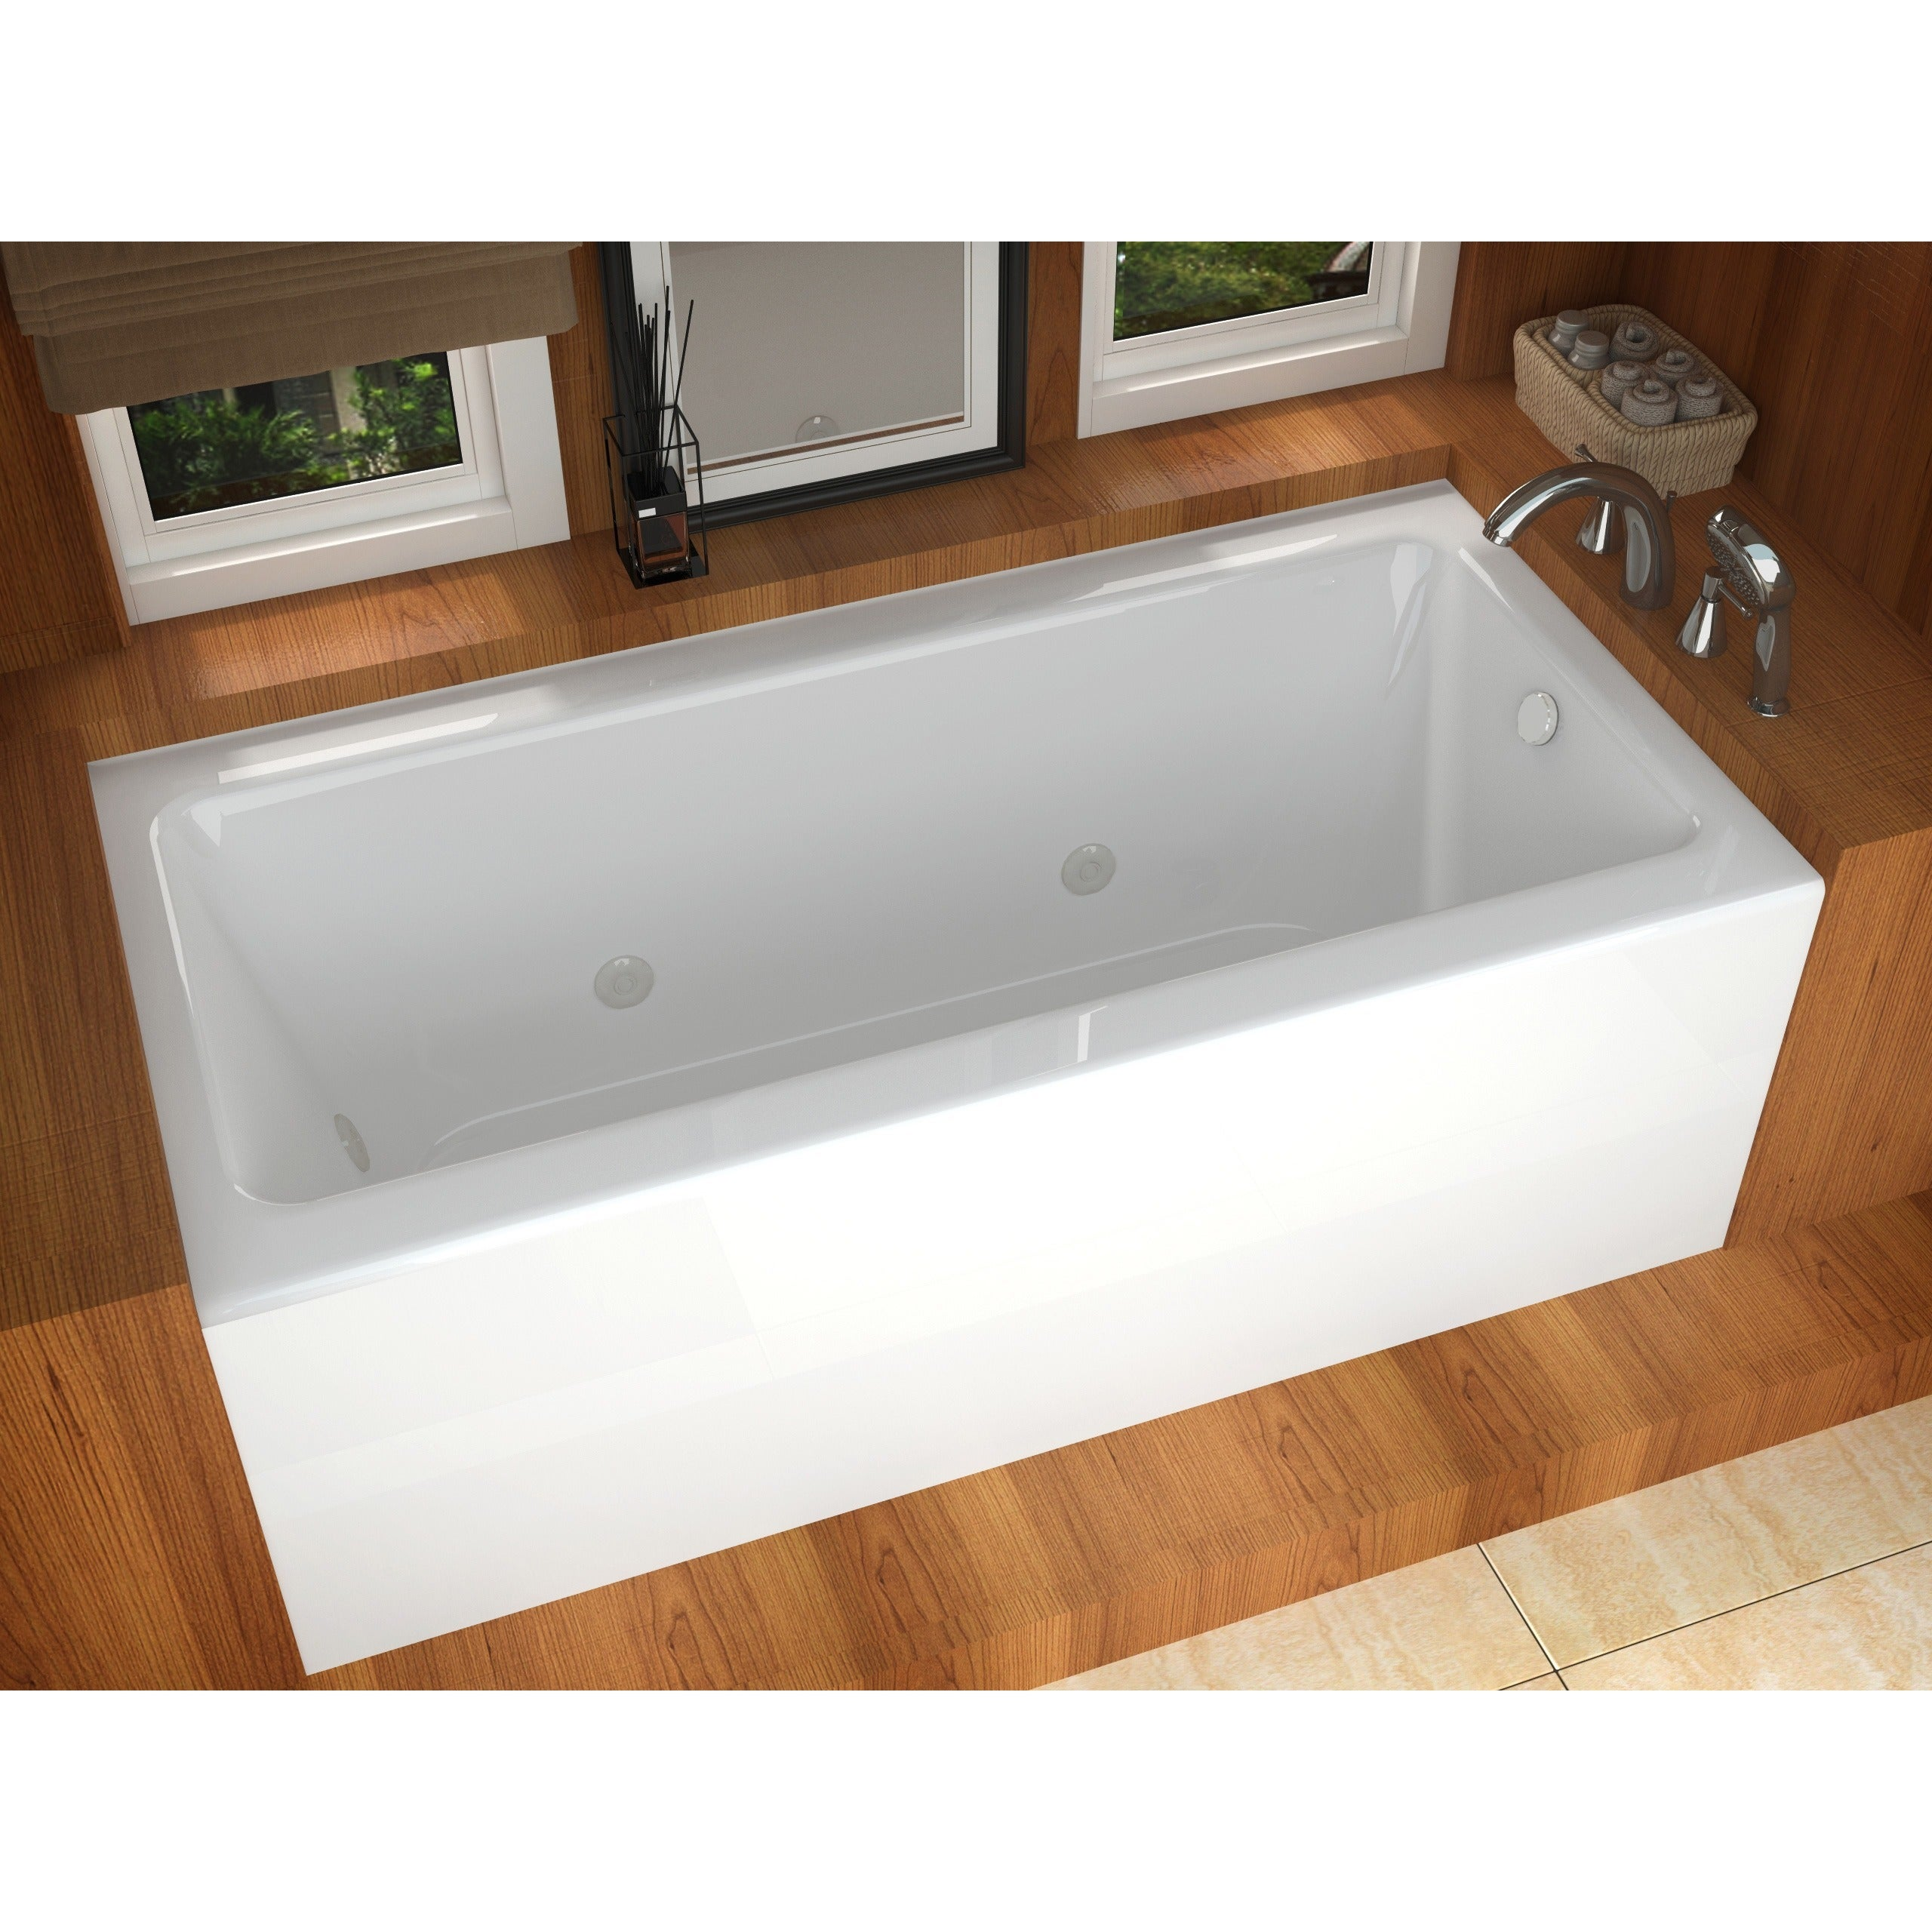 Shop Atlantis Whirlpools Soho 30 x 60 Front Skirted Whirlpool Tub ...